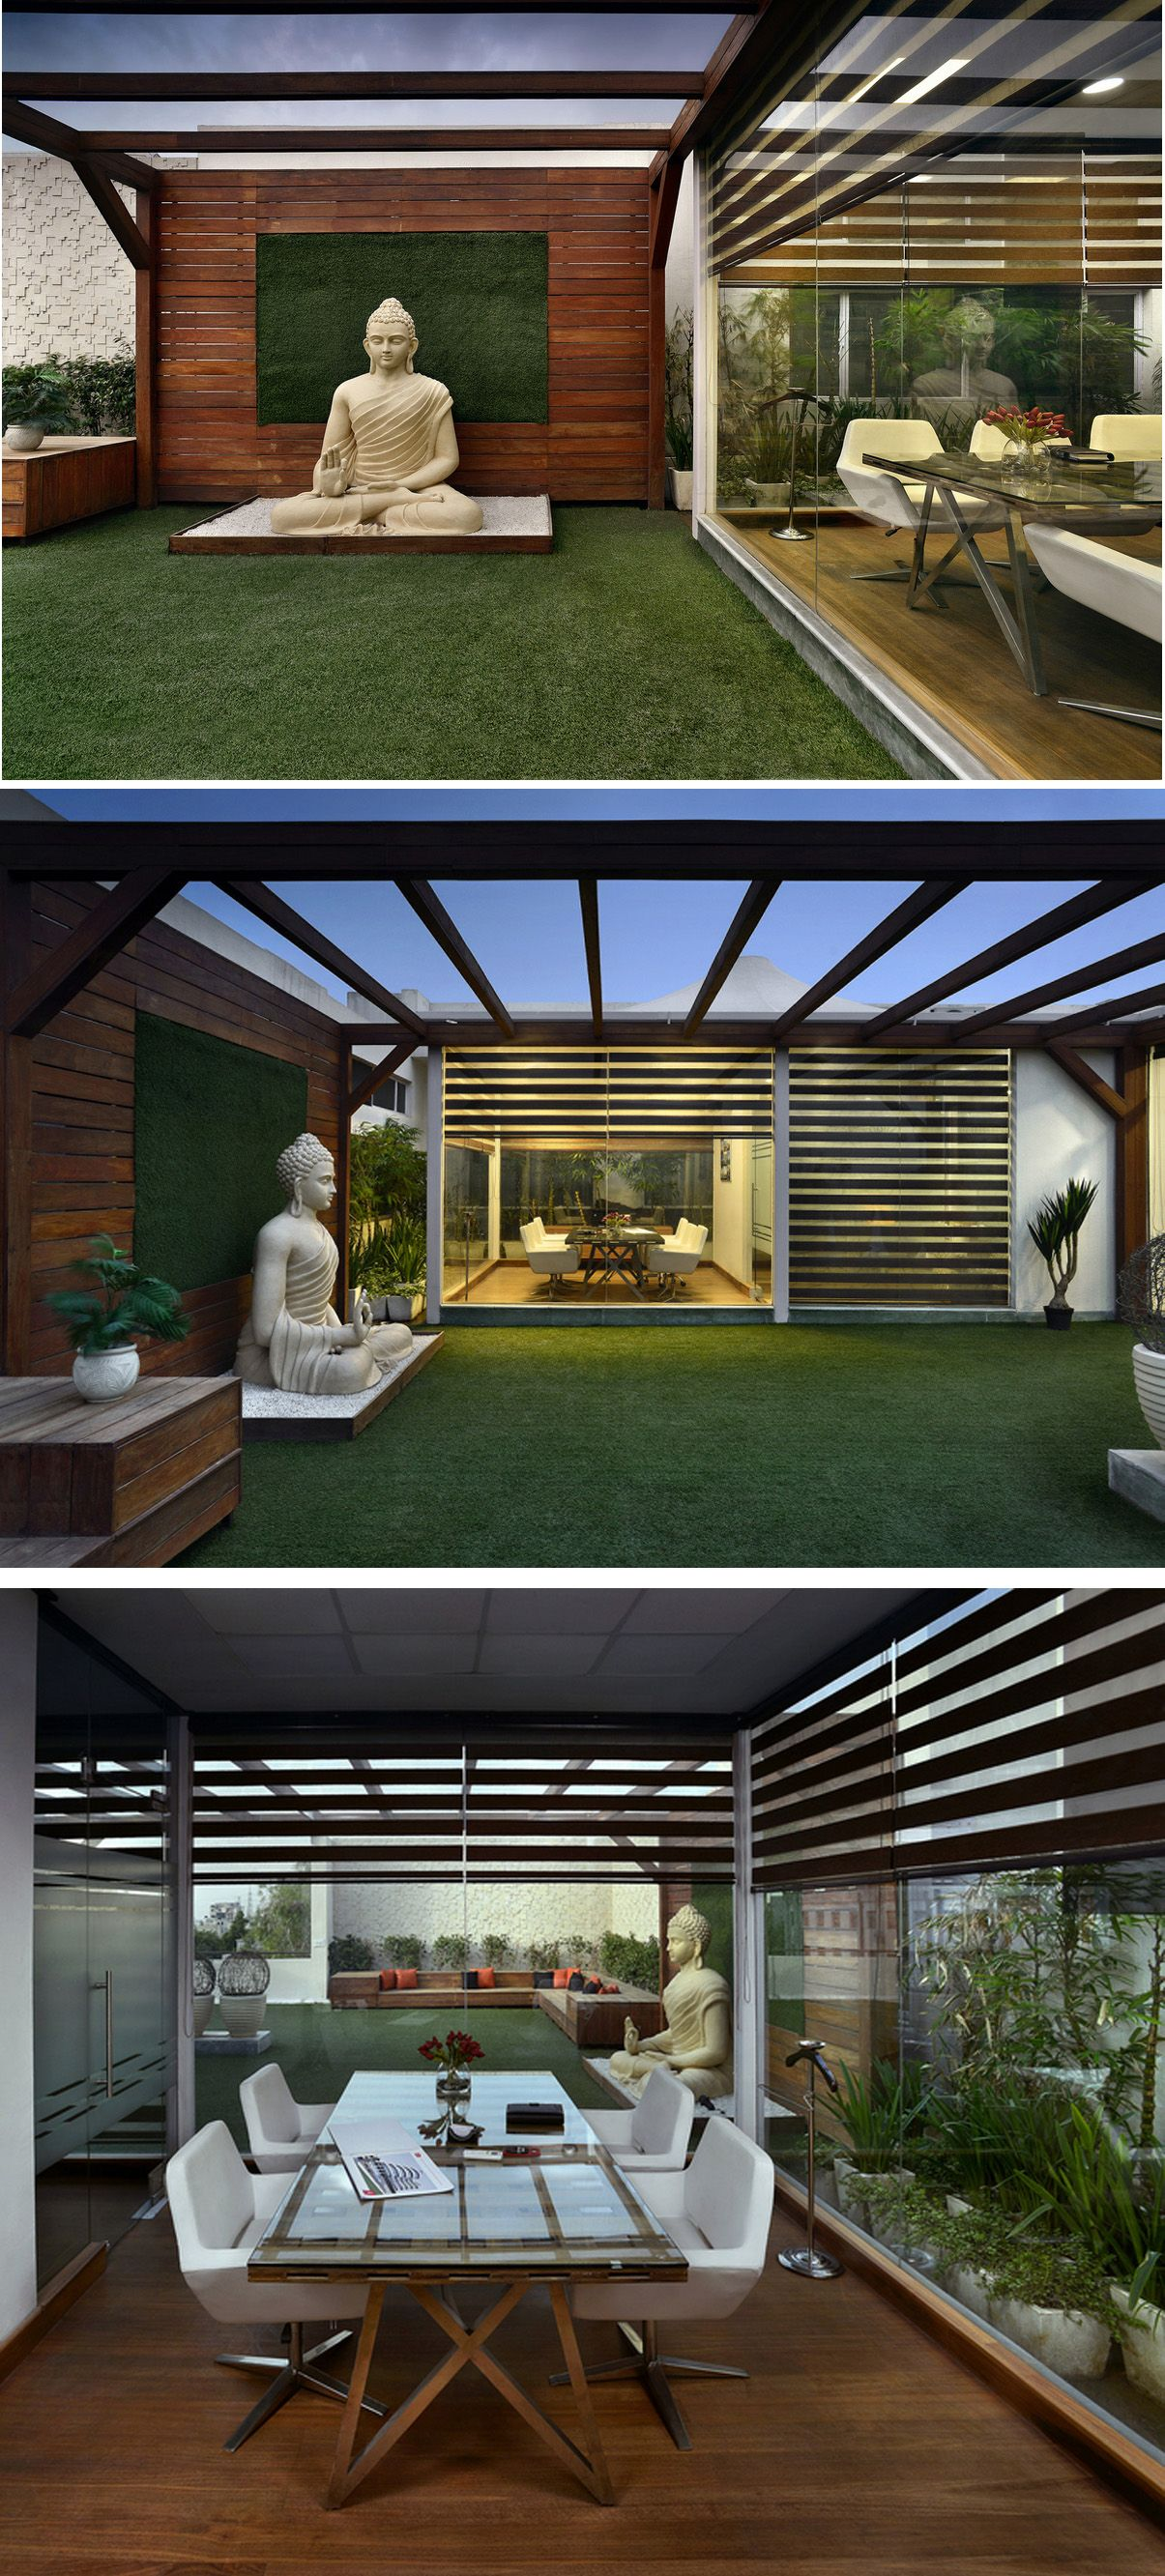 Terrace Landscape Office Design Terrace Garden Design, Terrace Decor, Terrace  Ideas, Balcony Design